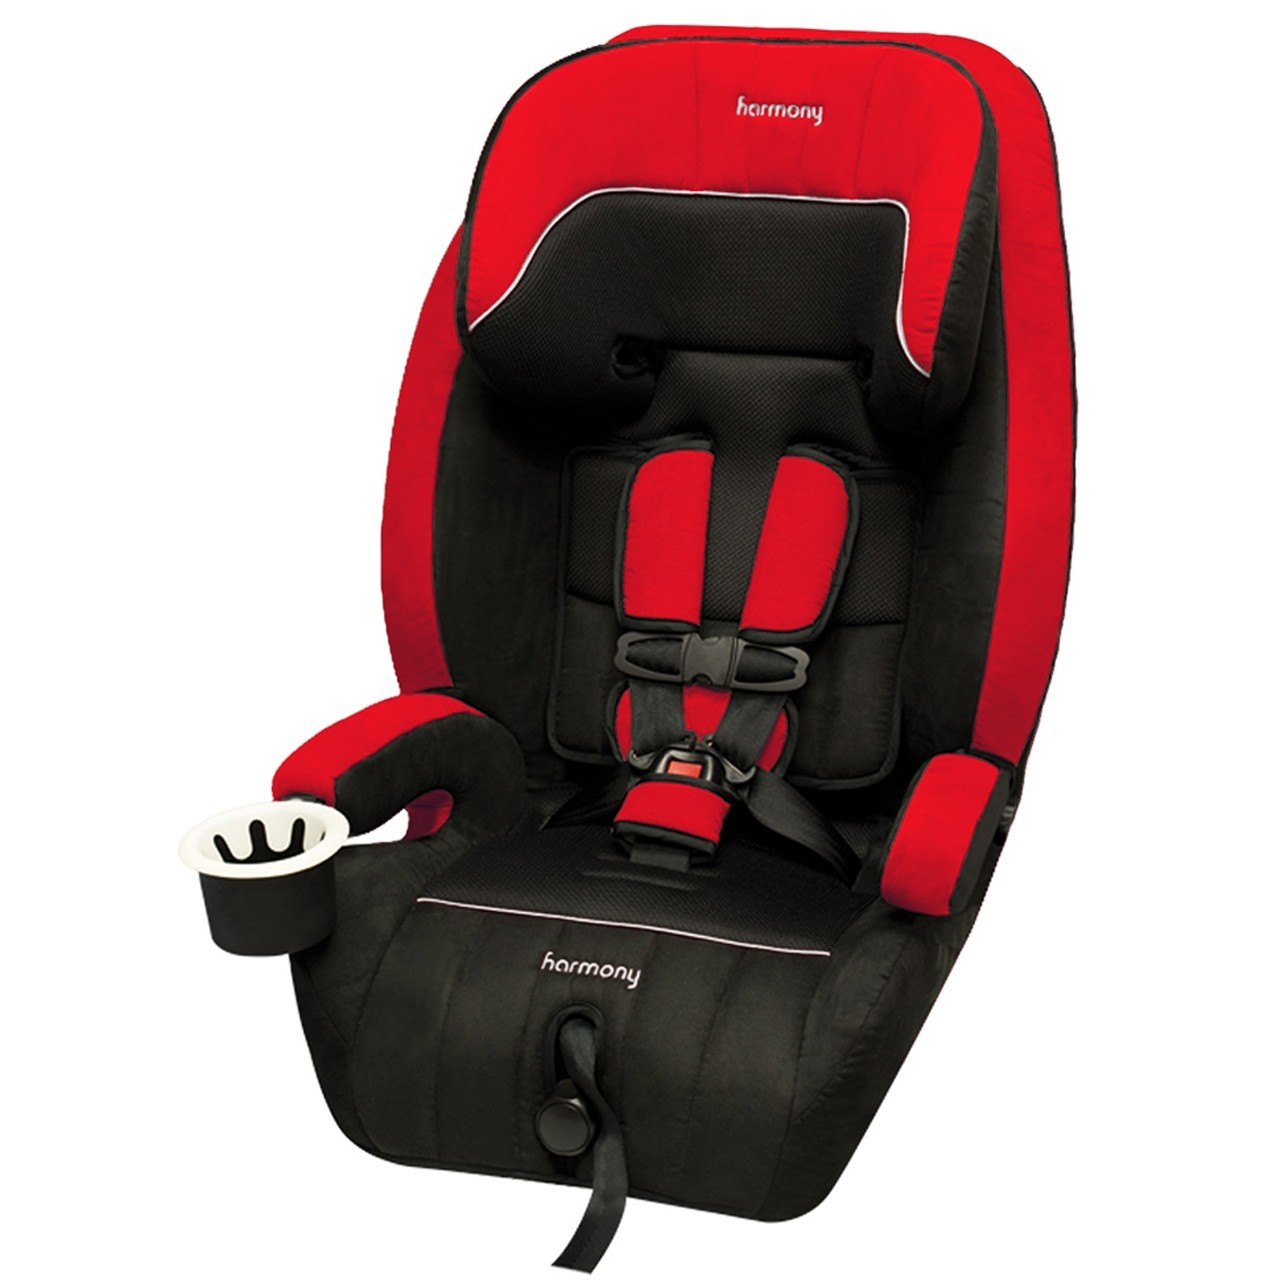 Defender 360° 3-in-1 Combination Deluxe Car Seat - Red/Black